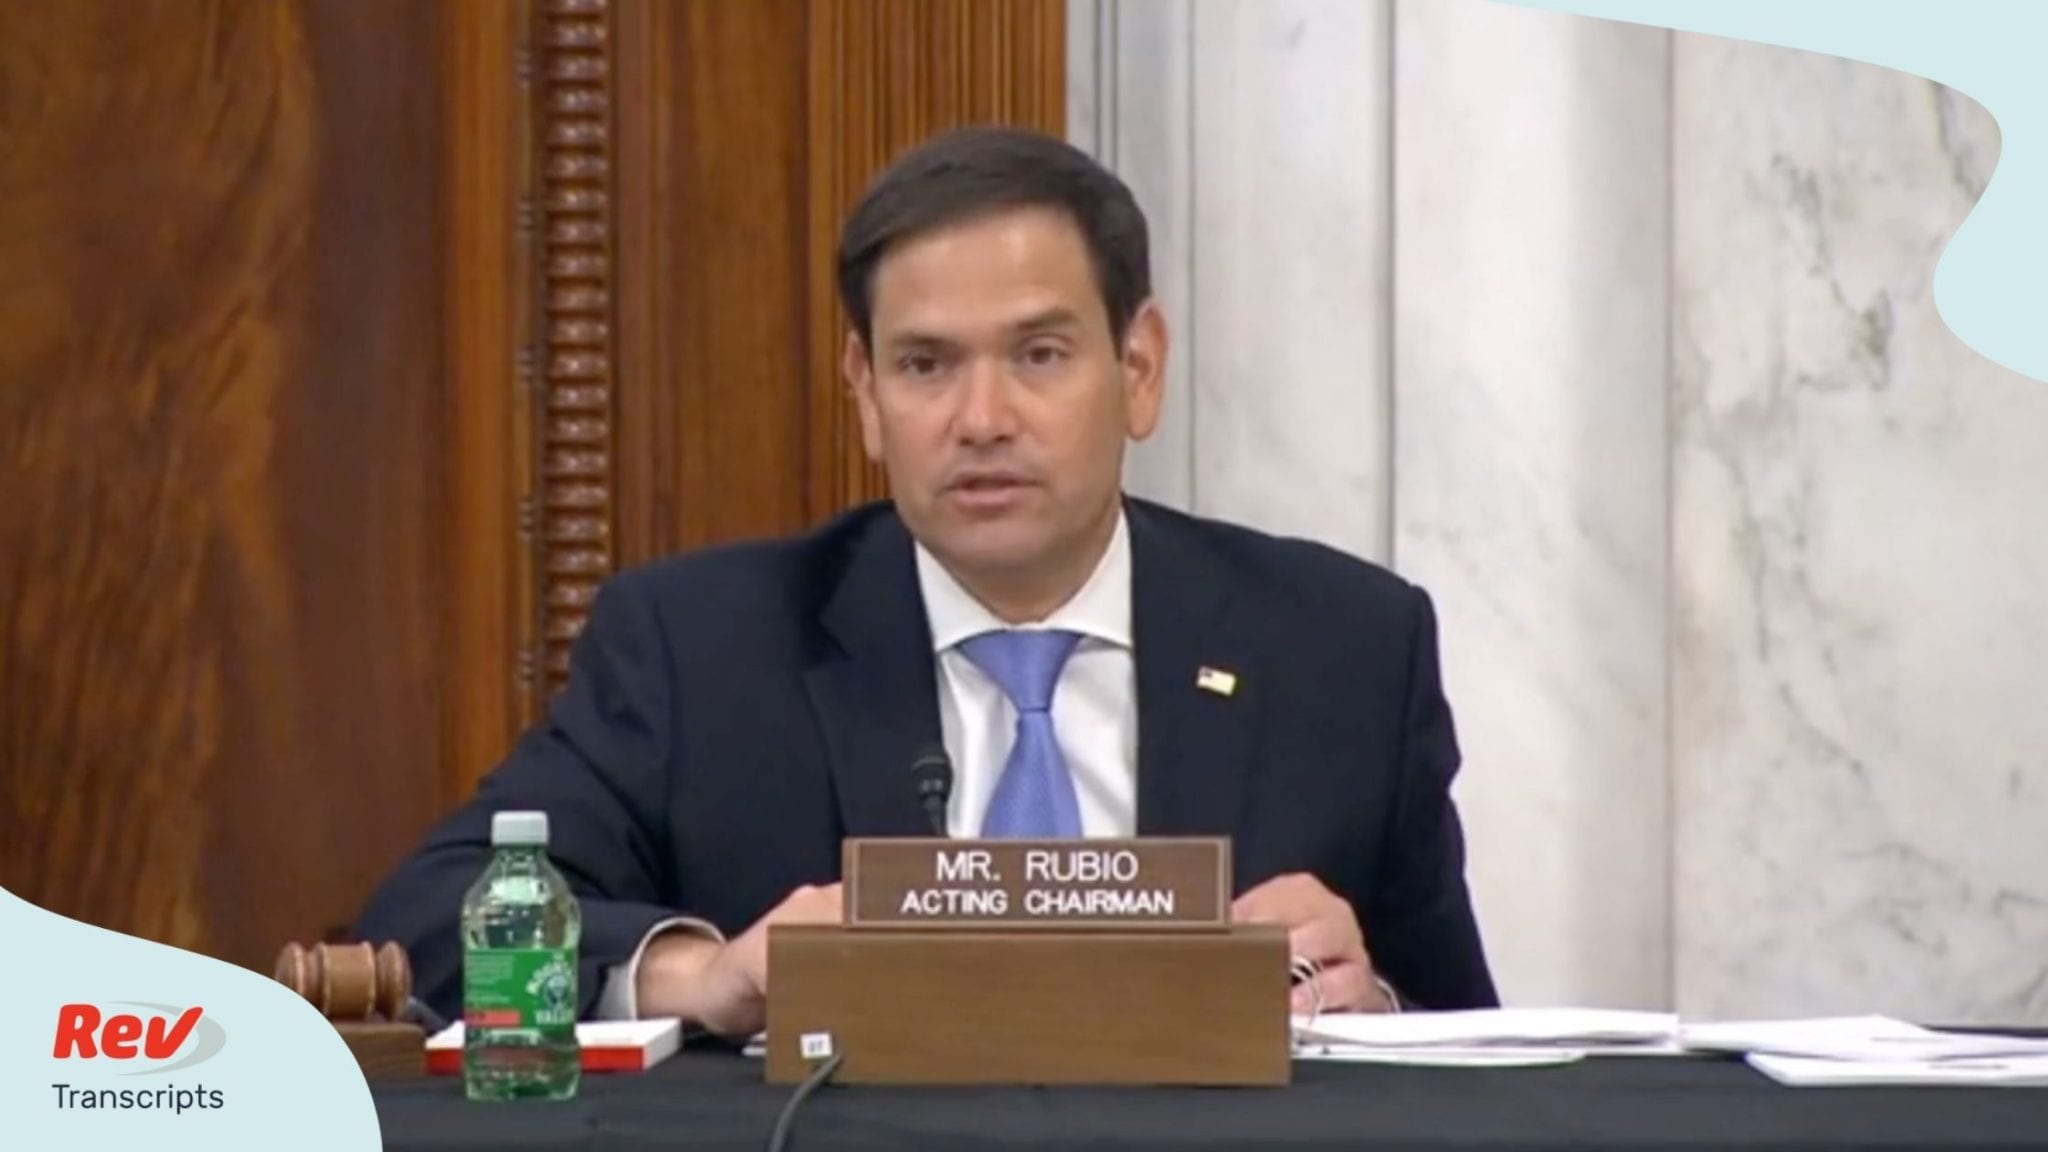 Senator Marco Rubio at a Senate confirmation hearing July 22